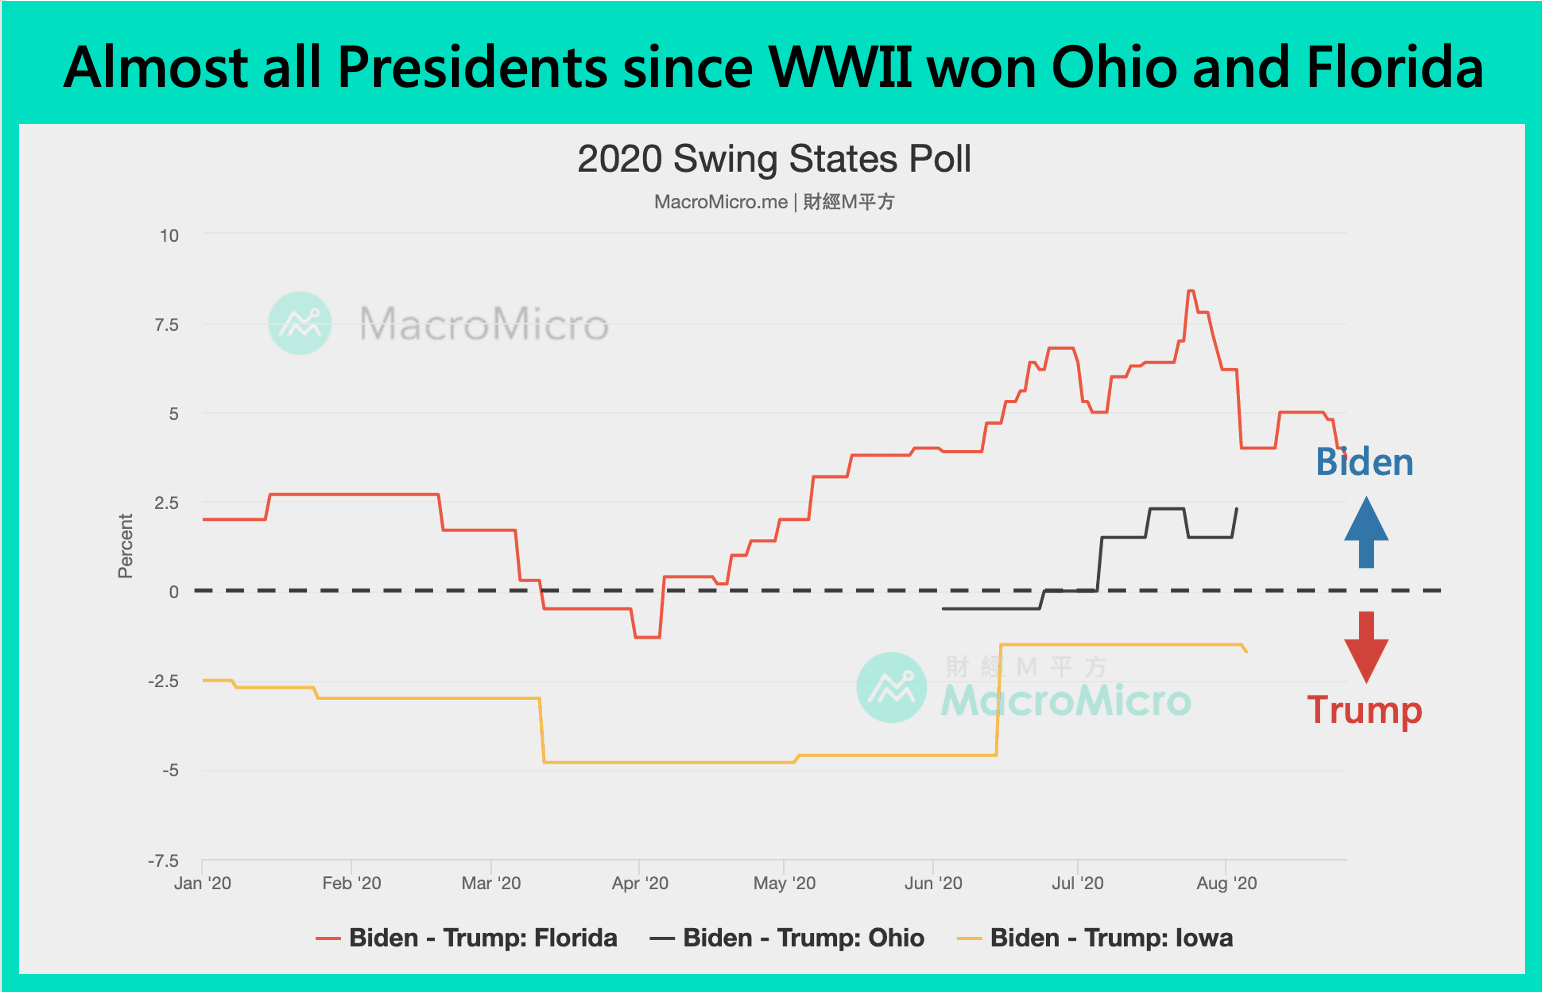 Almost all Presidents since WWII won Ohio and Florida